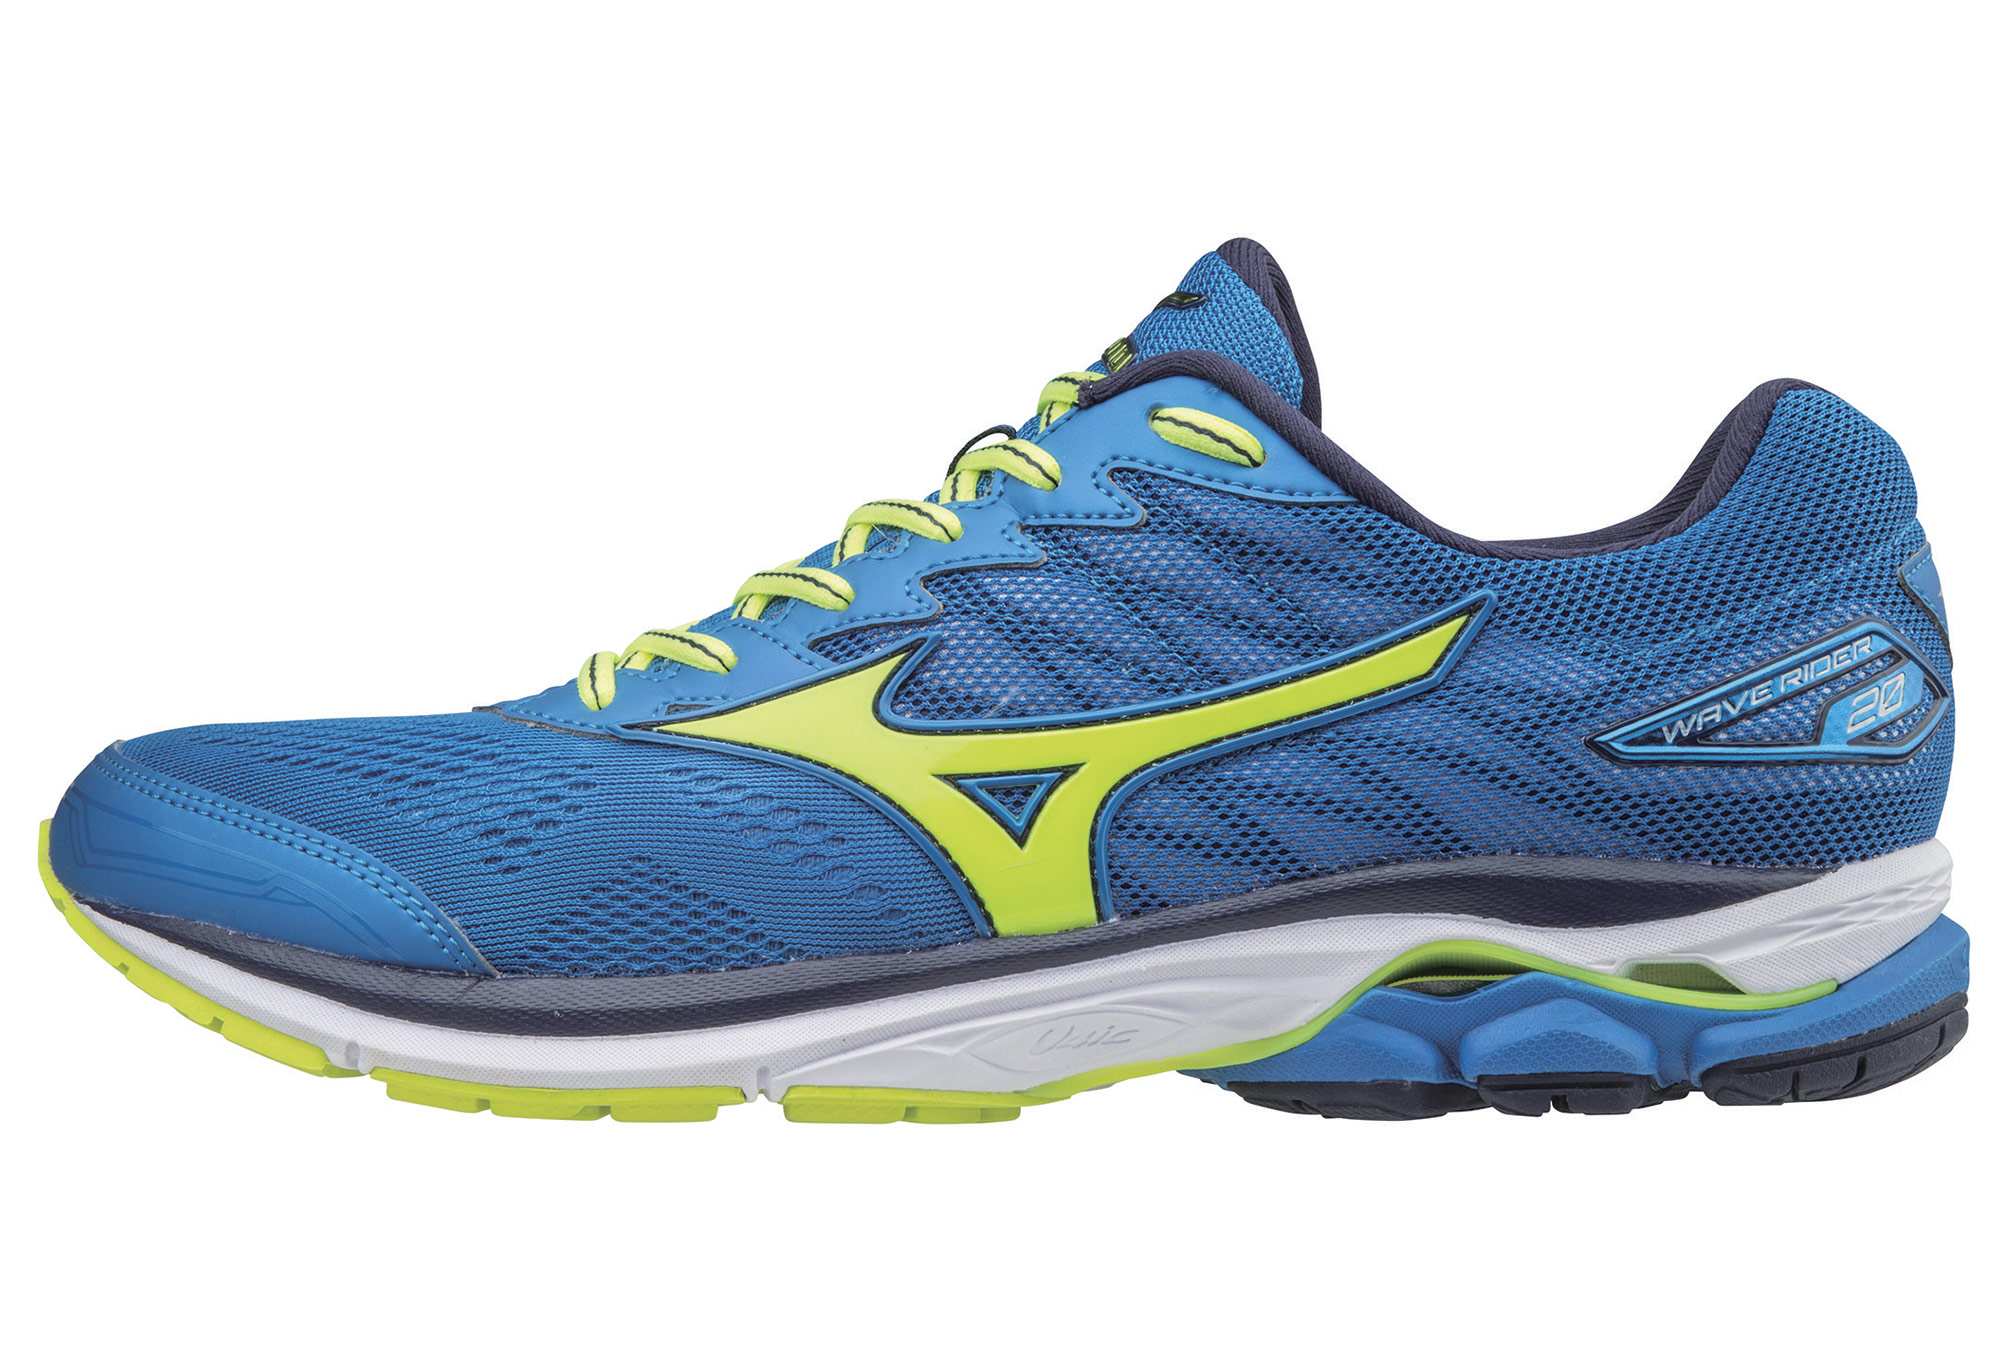 best mizuno shoes for walking everyday qualities